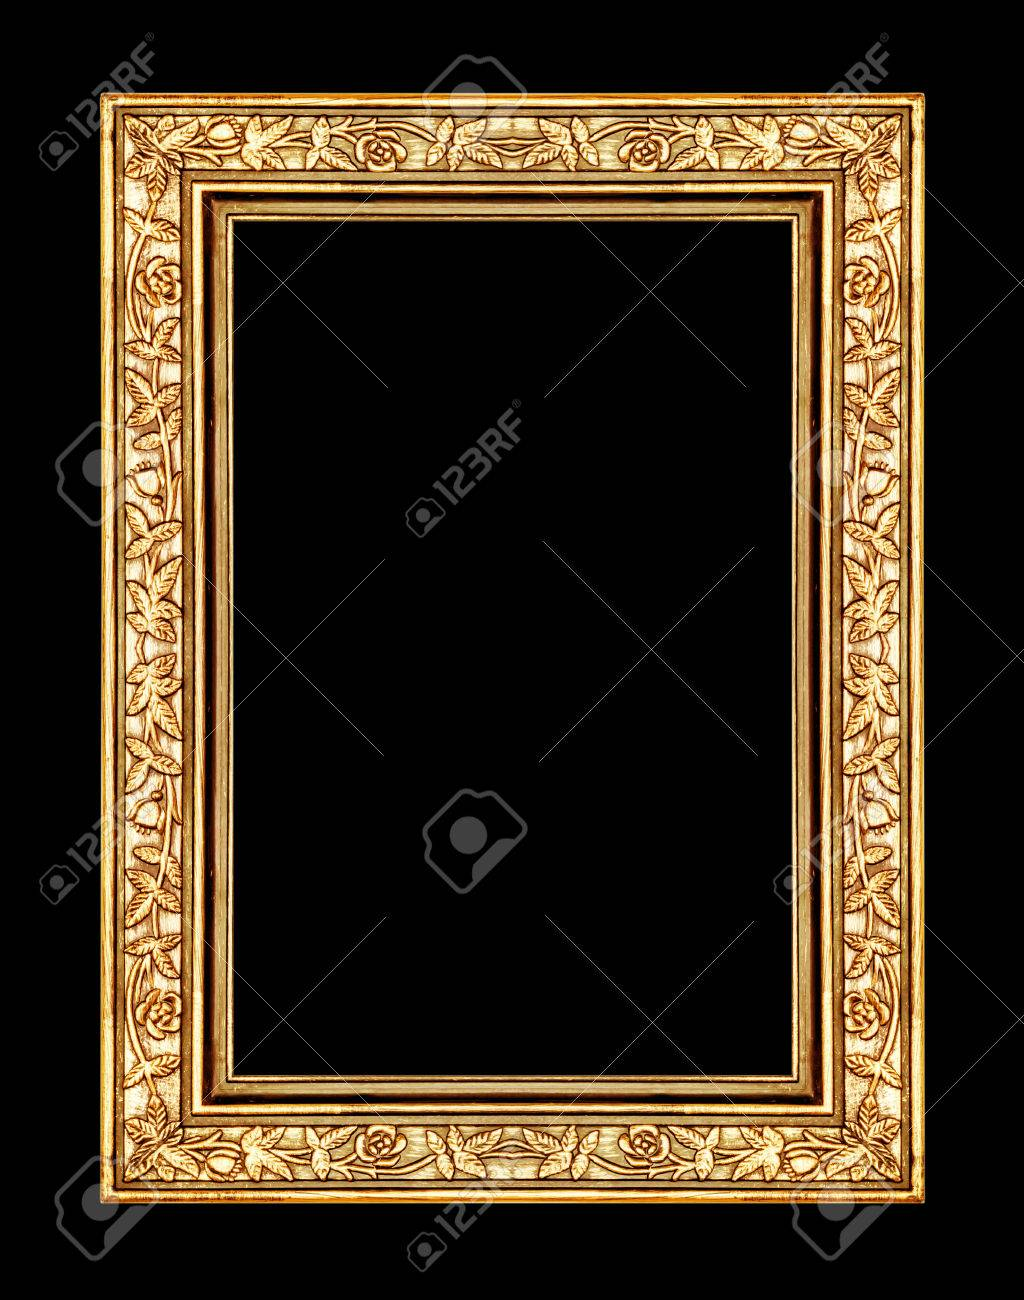 stock photo vintage rose gold frame isolated on black background with clipping path